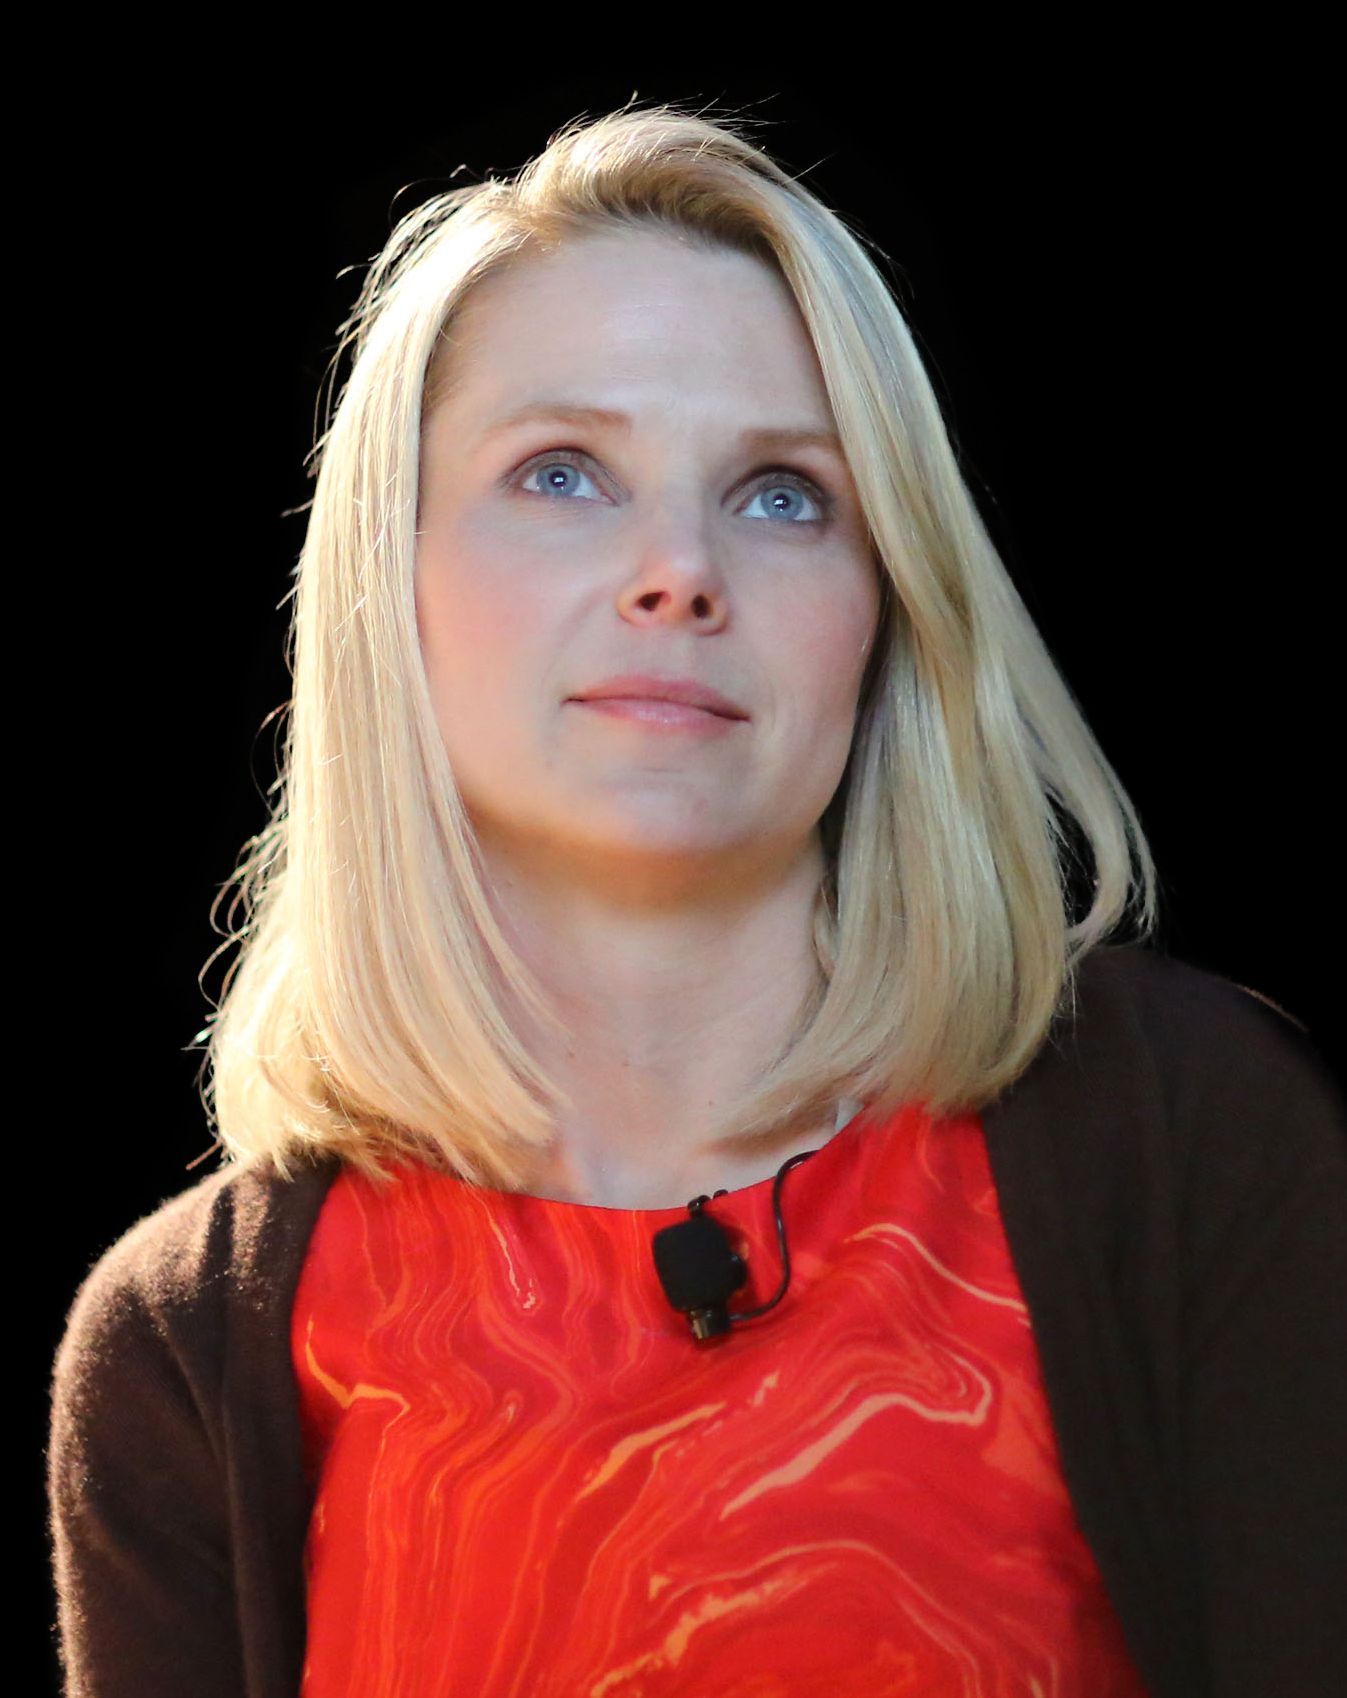 Marissa Mayer Talks About Value of Hard Work in Interview